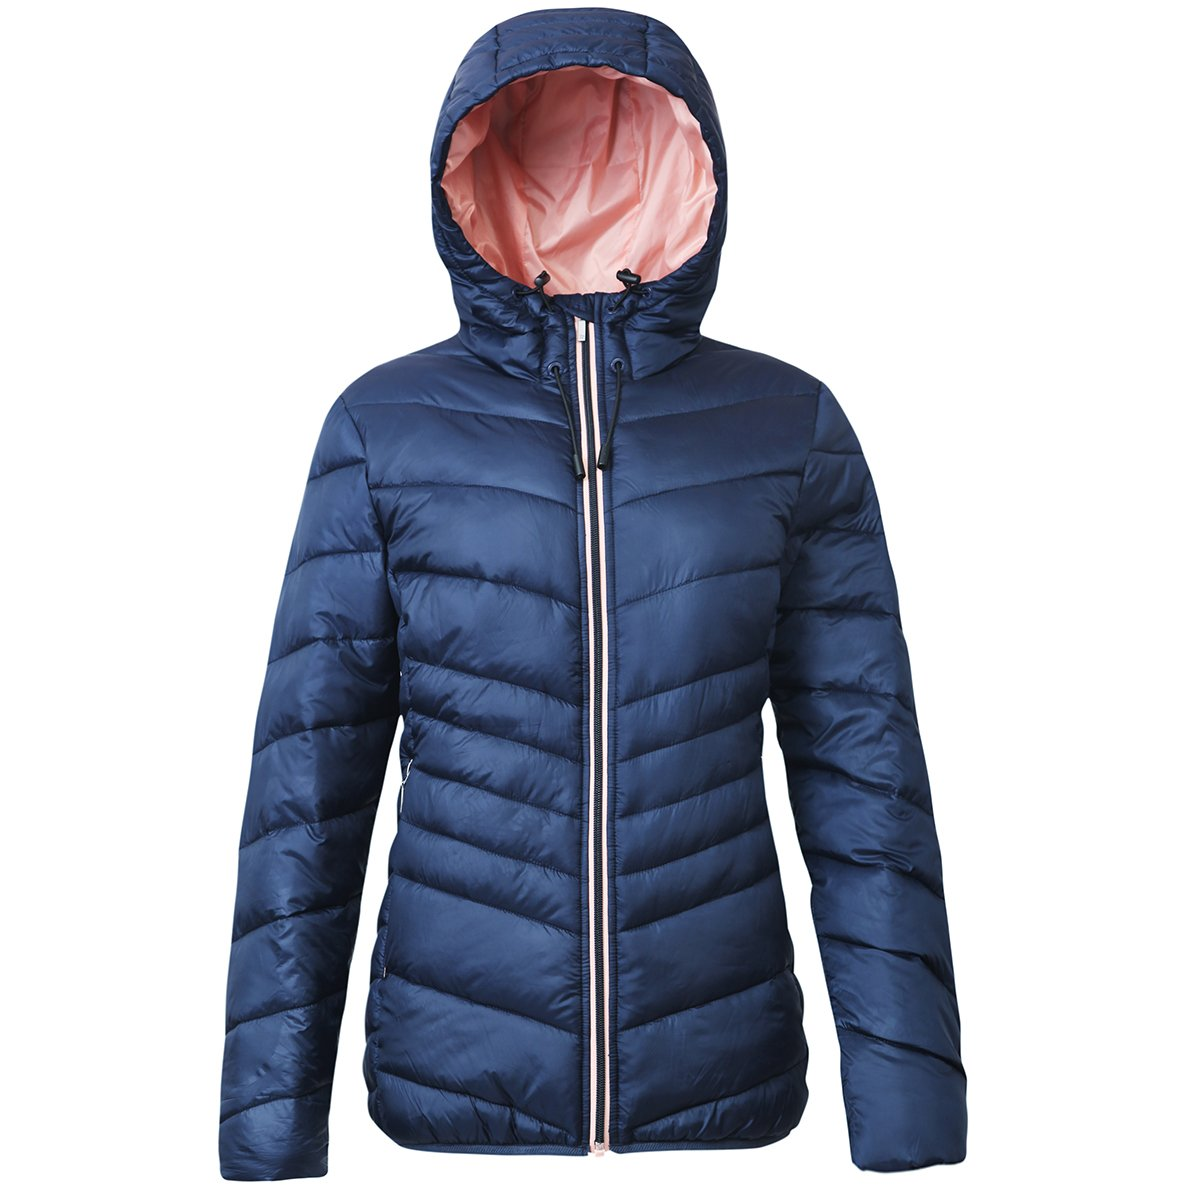 Rokka&Rolla Women's Lightweight Water Resistant Hooded Quilted Poly Padded Puffer Jacket by Rokka&Rolla